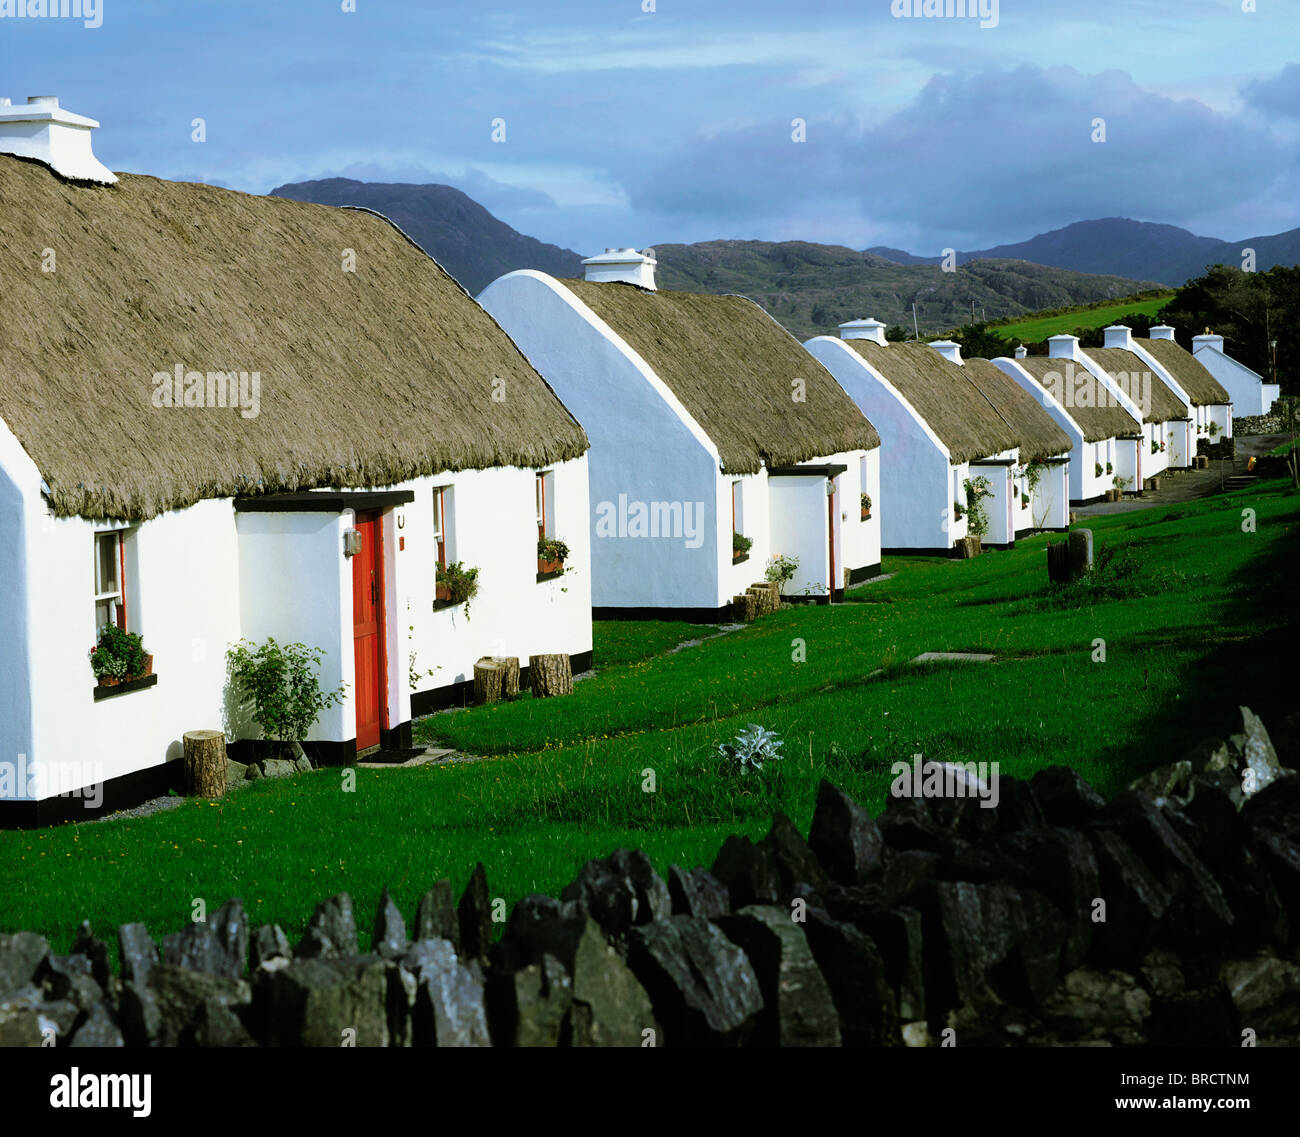 tullycross co galway irland urlaub auf dem land stockfoto bild 31630304 alamy. Black Bedroom Furniture Sets. Home Design Ideas